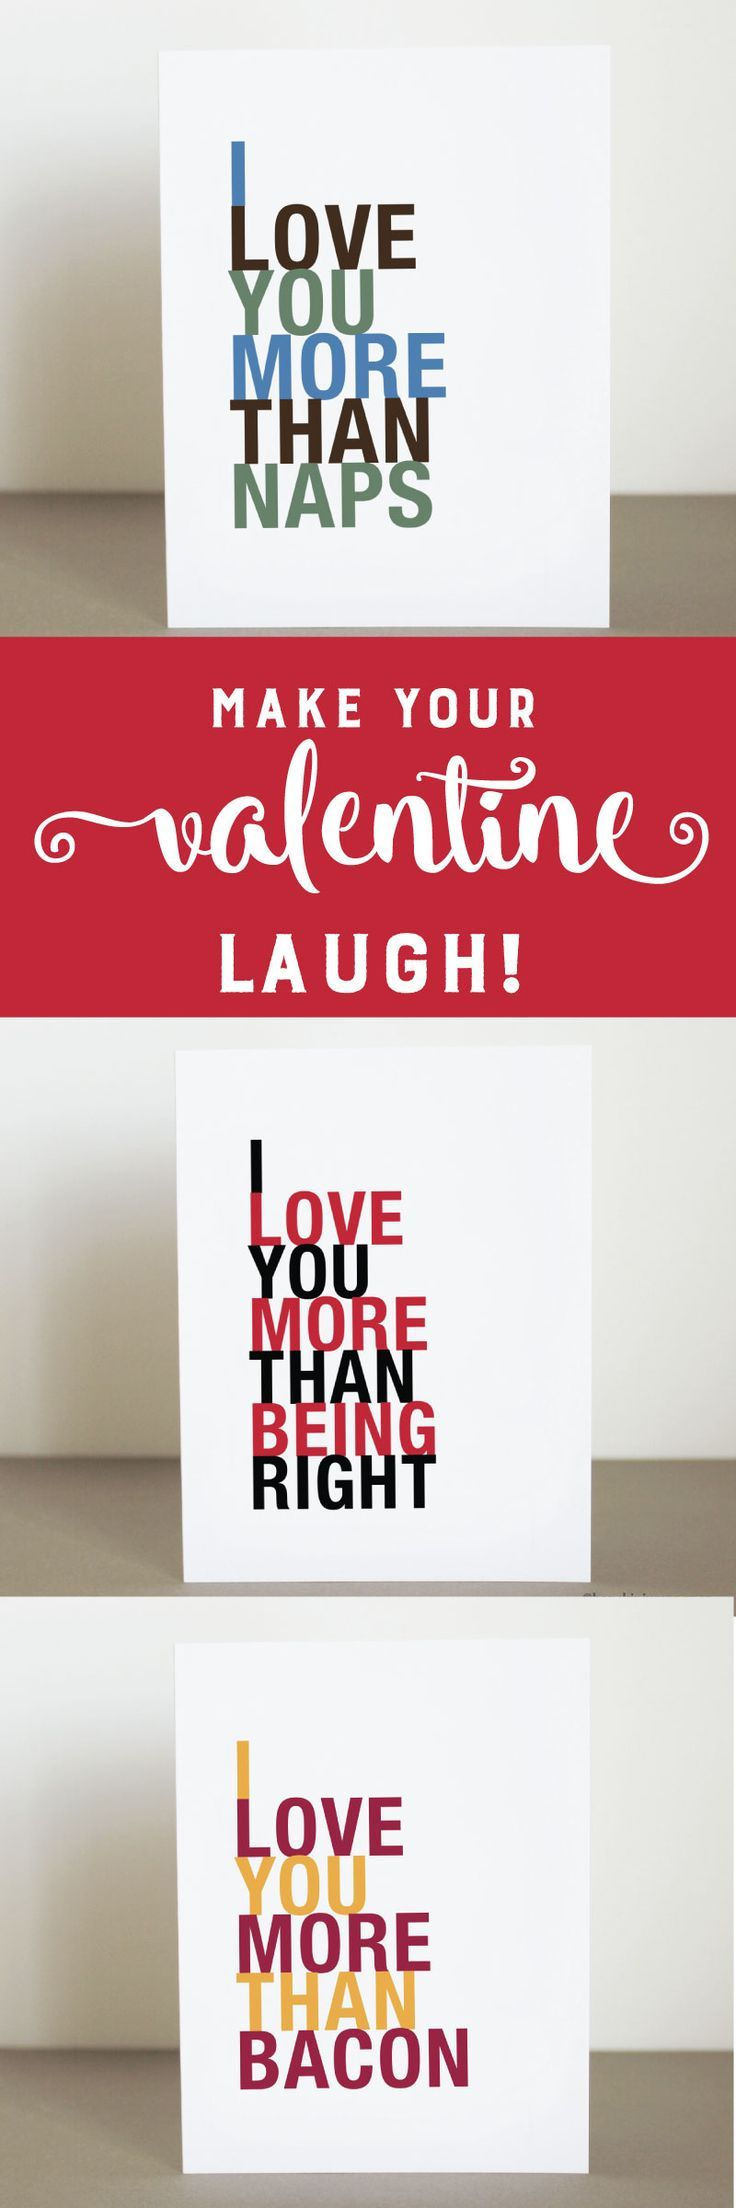 Make your valentine laugh with this clever greeting cards make your valentine laugh with this clever greeting cards kristyandbryce Image collections